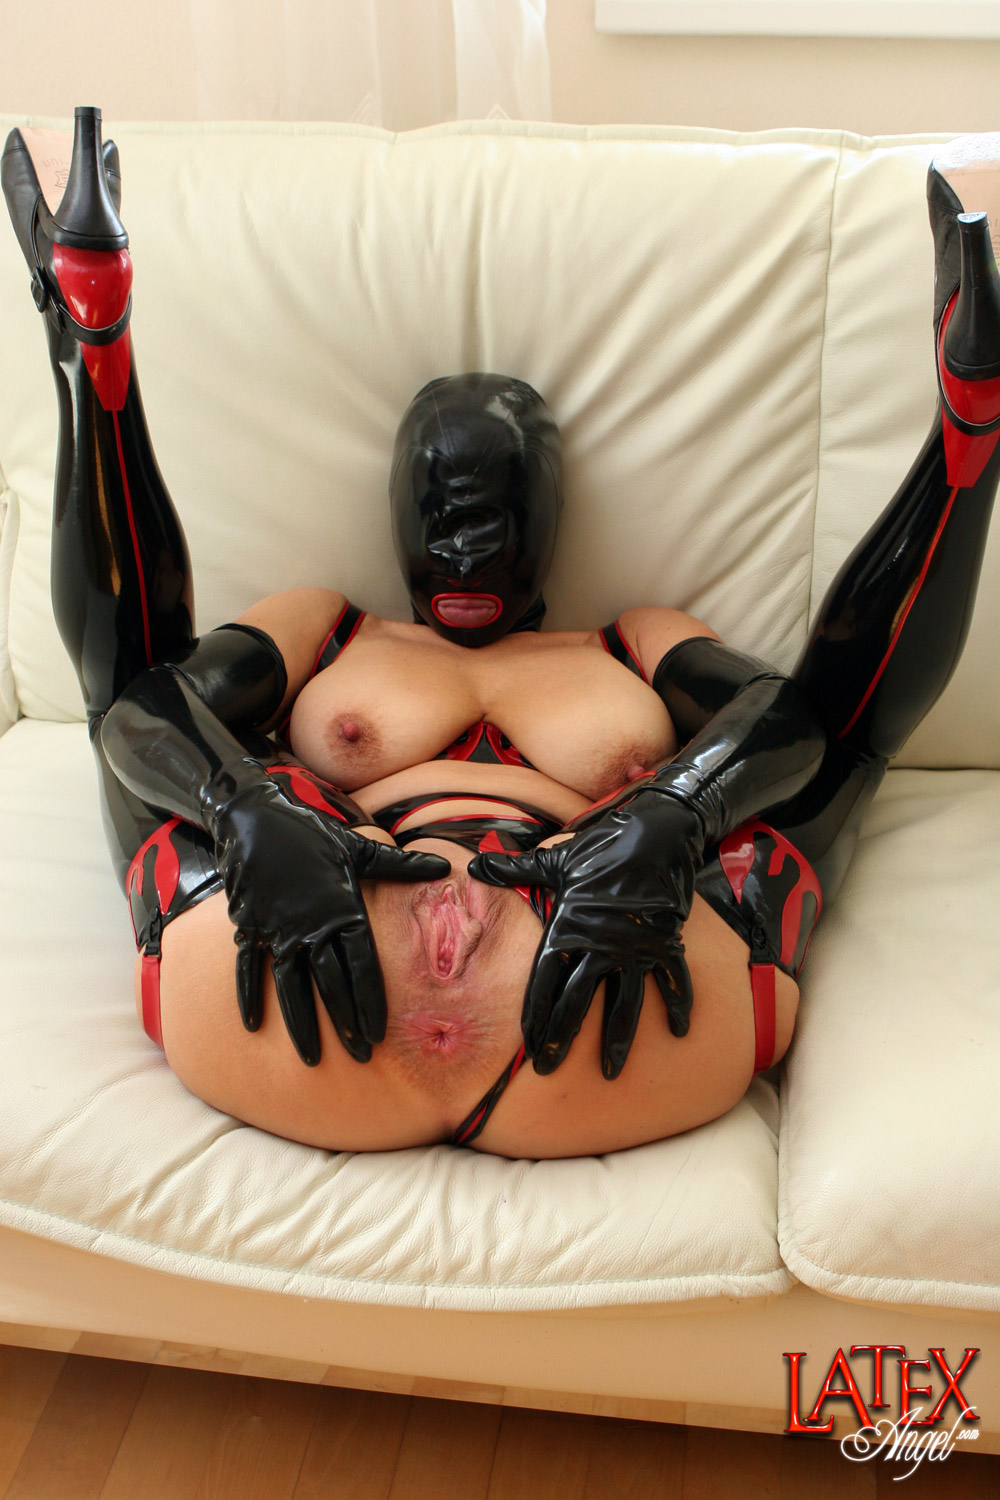 Story blindfold blowjob dildo excellent and